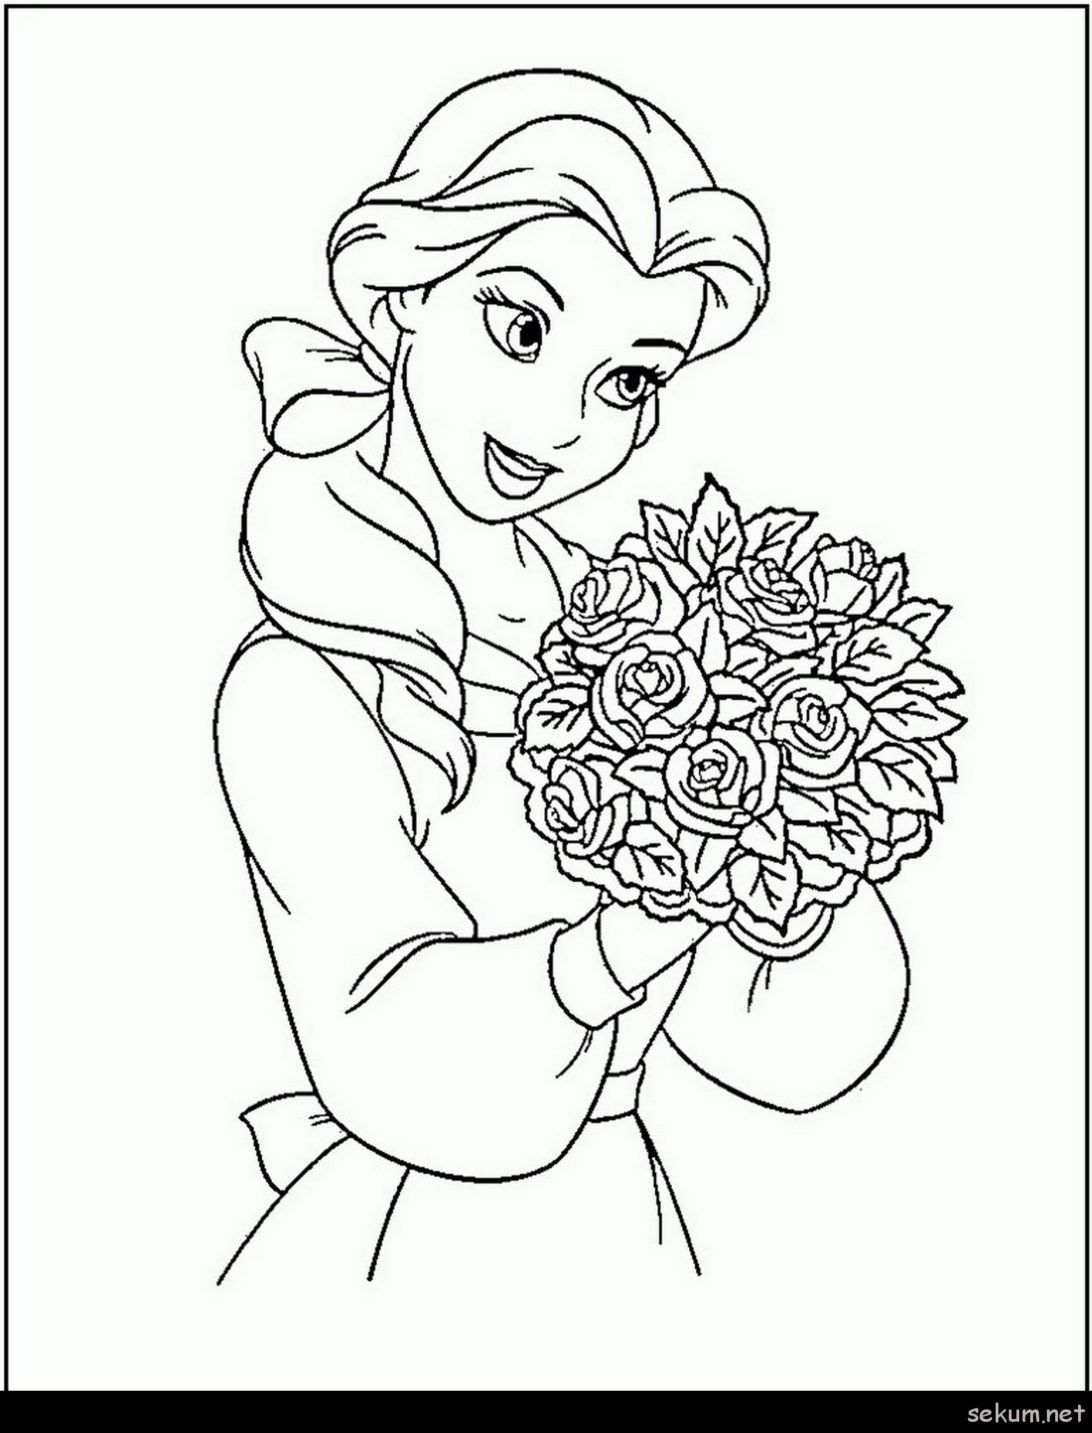 Coloring Pages Disney Princesses Coloring Free Printable Colouring Pages Disney Free Disney Coloring Pages Disney Princess Coloring Pages Ariel Coloring Pages